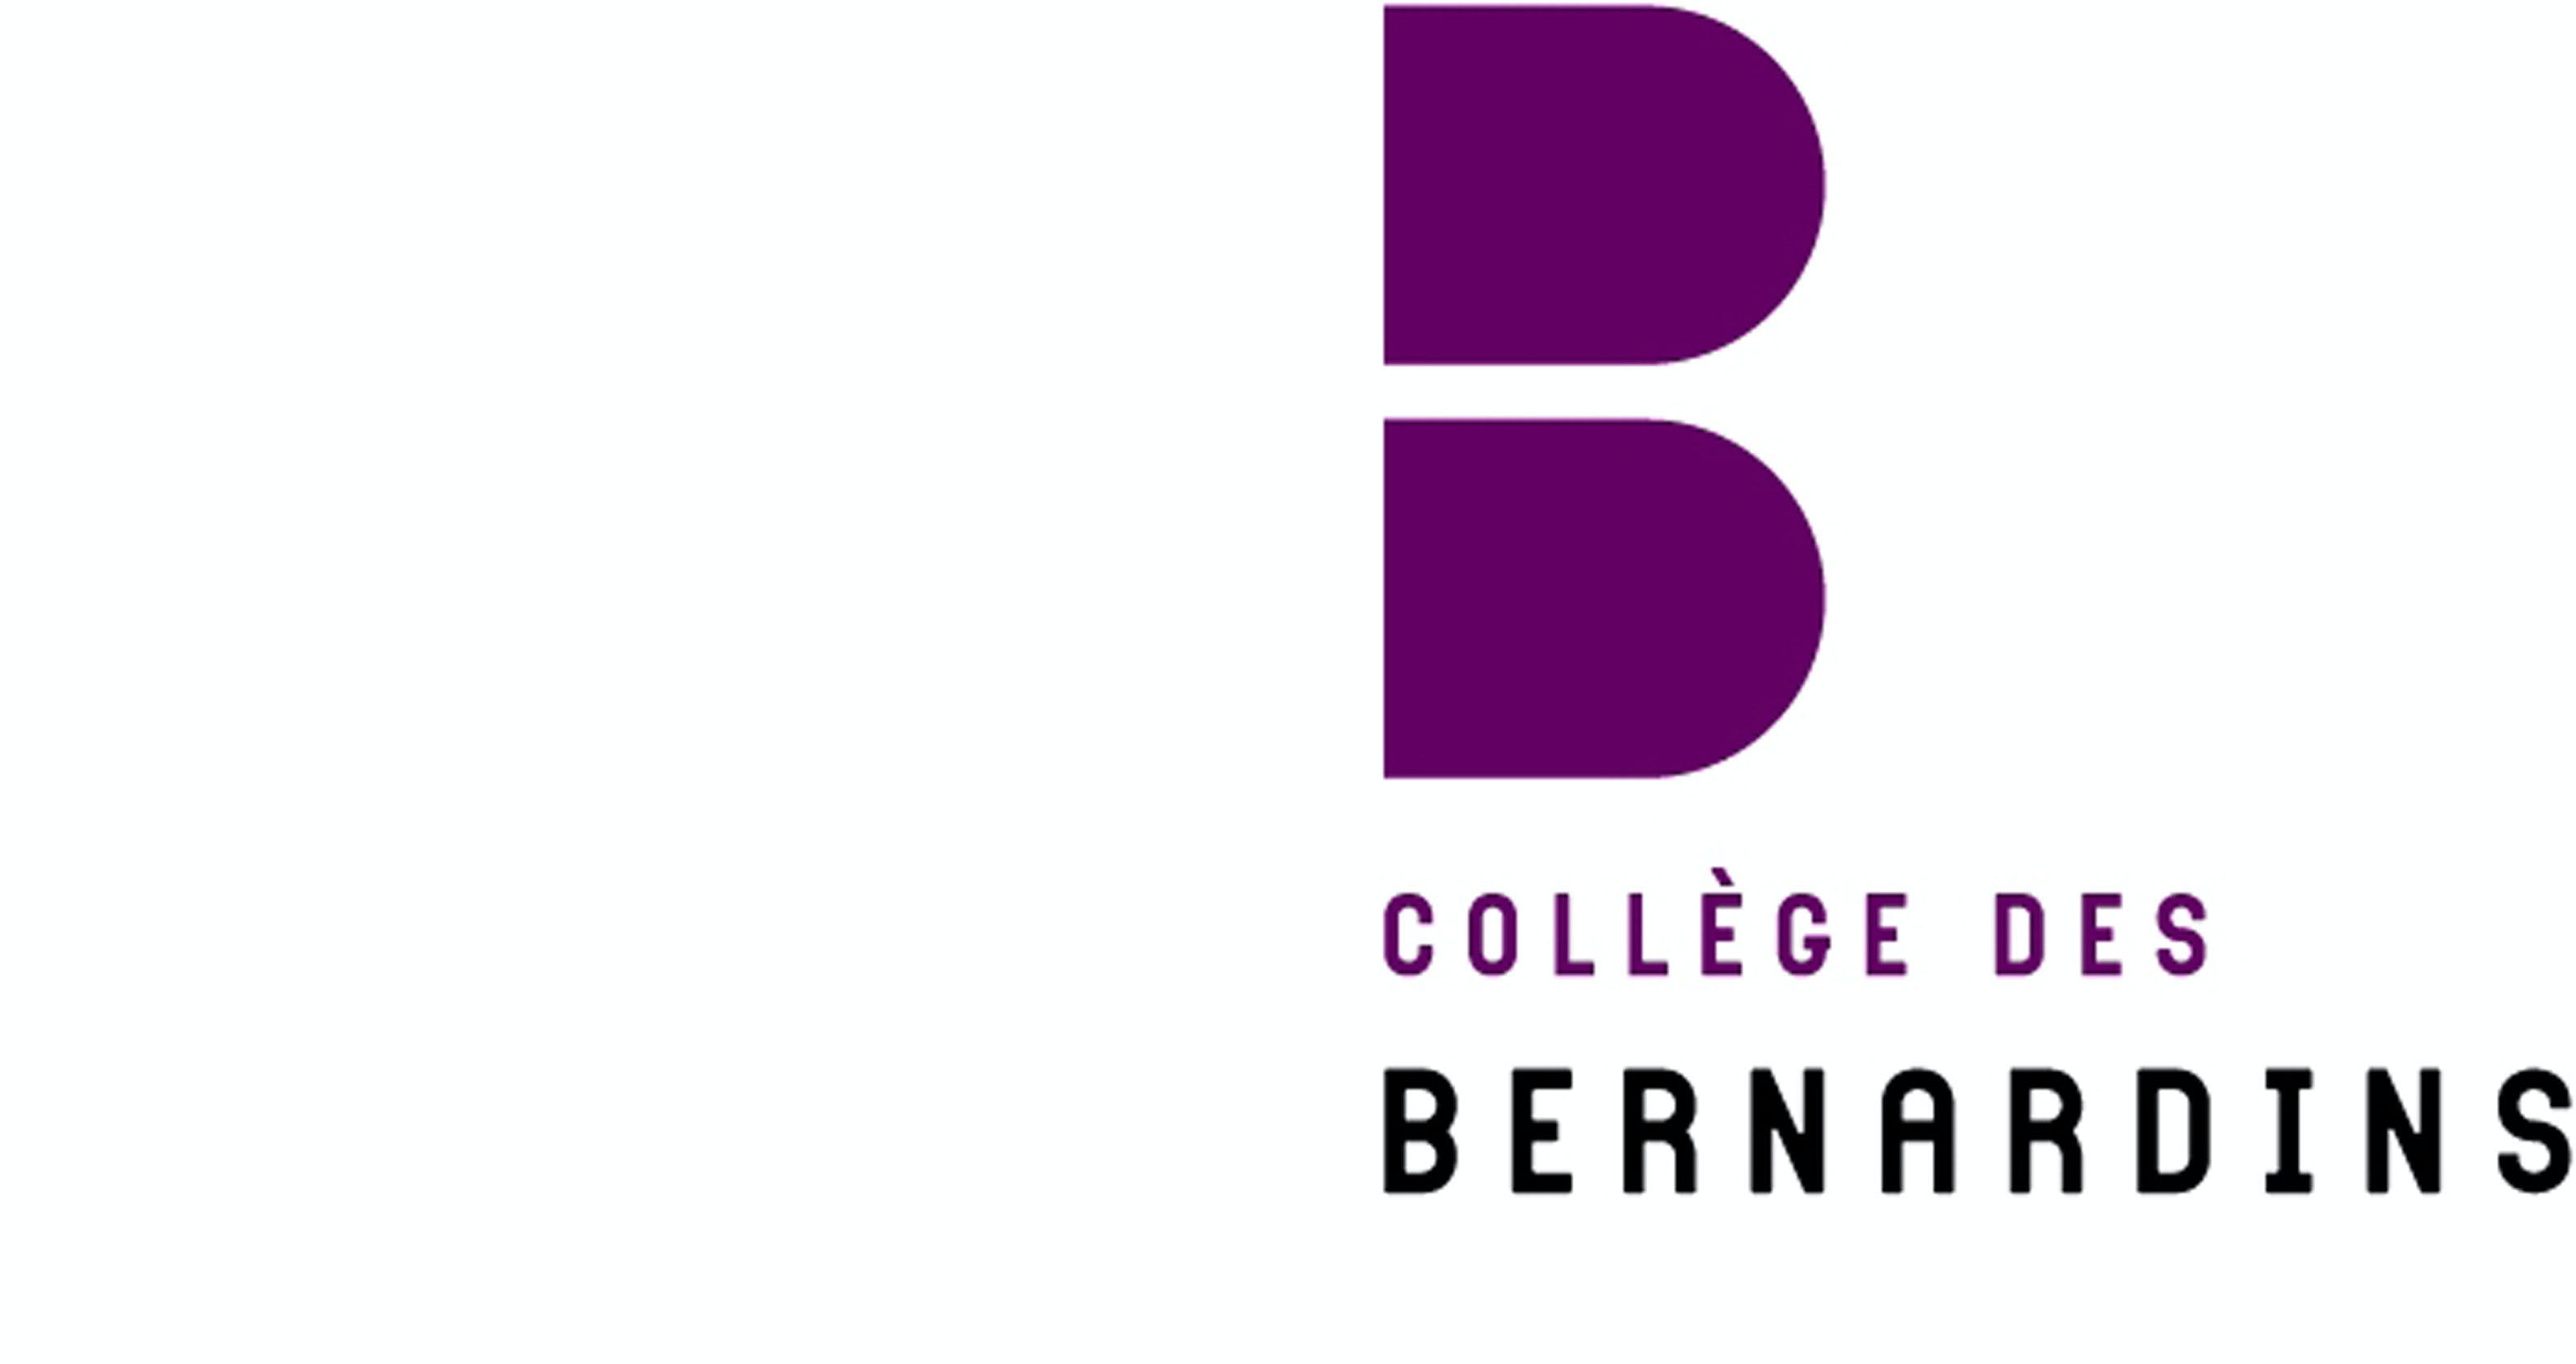 https://www.collegedesbernardins.fr/